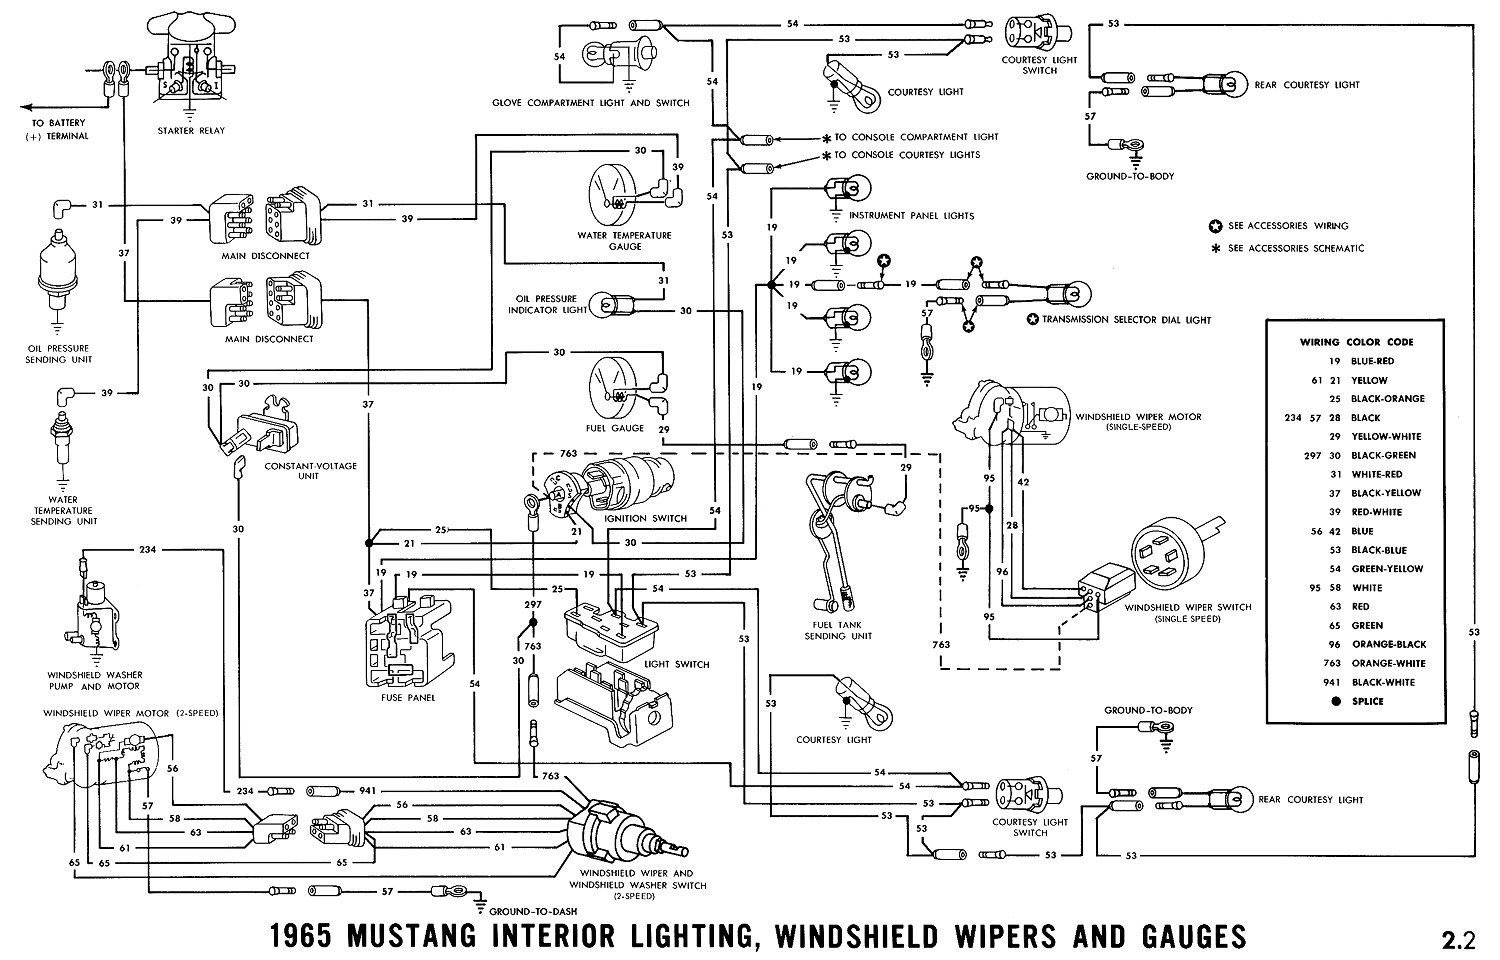 1965g 1989 mustang wiring diagram 1993 mustang radio wiring diagram  at virtualis.co